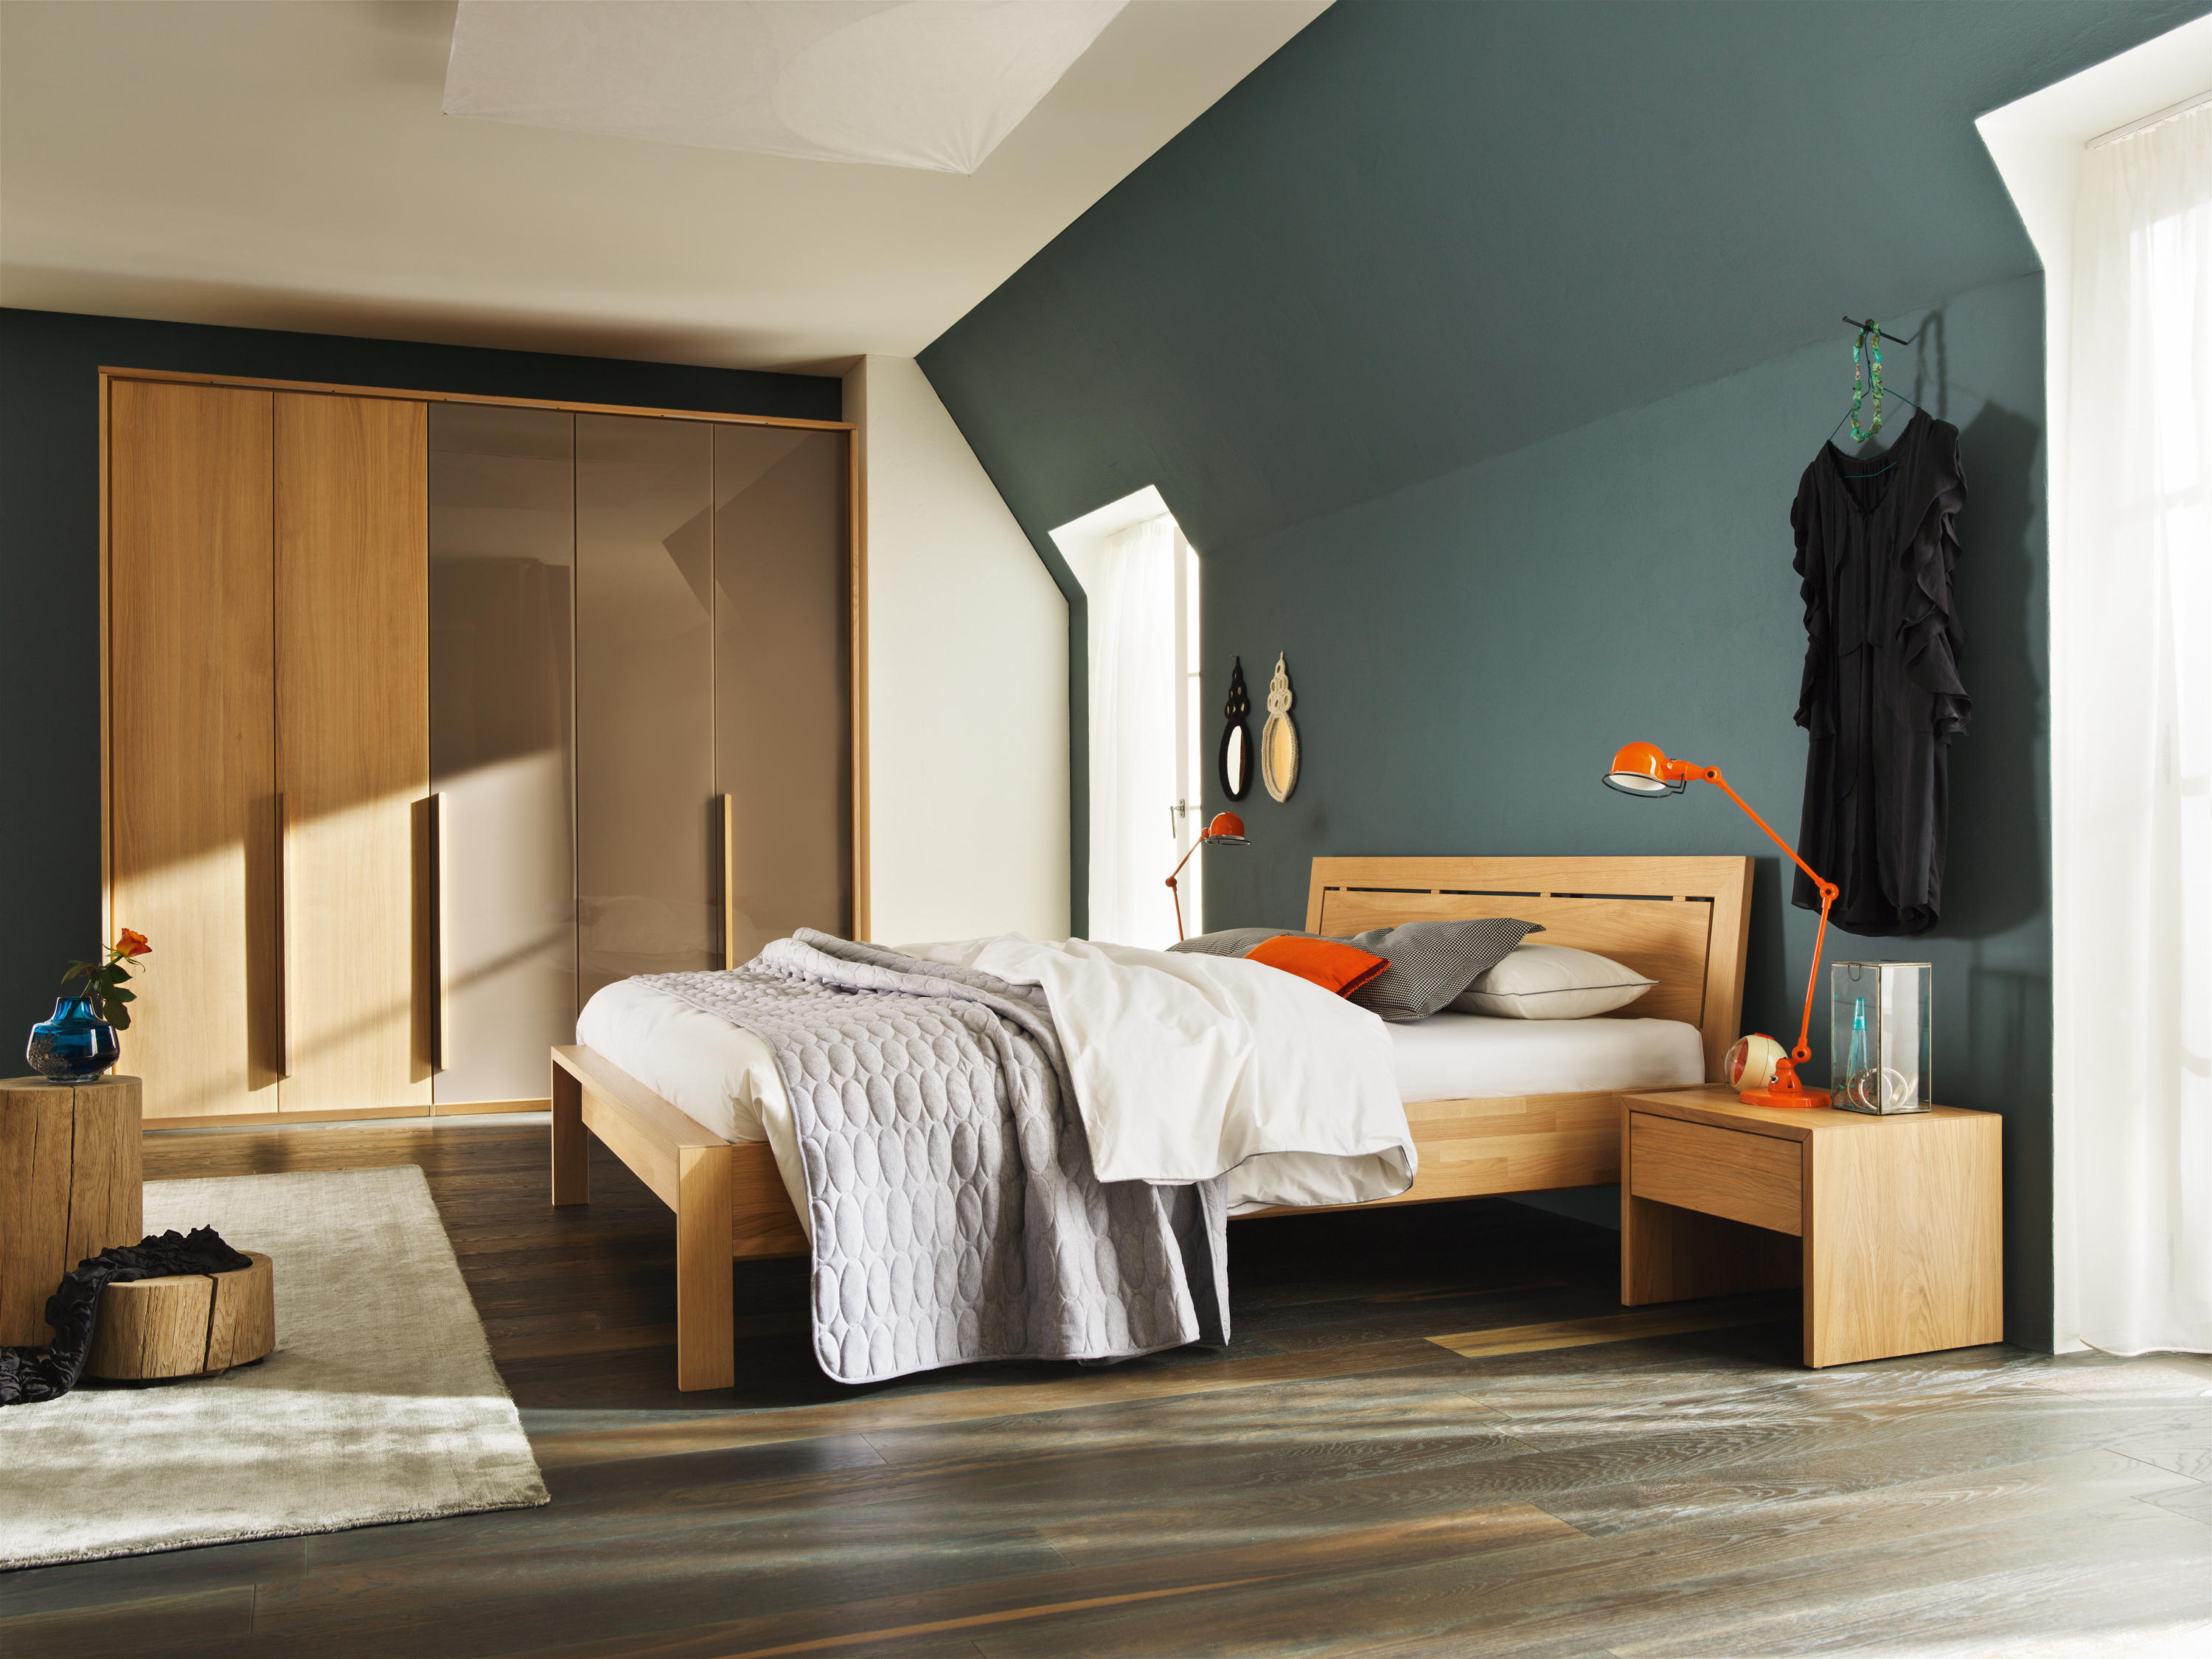 Soft Wardrobe System Cabinets From Team 7 Architonic